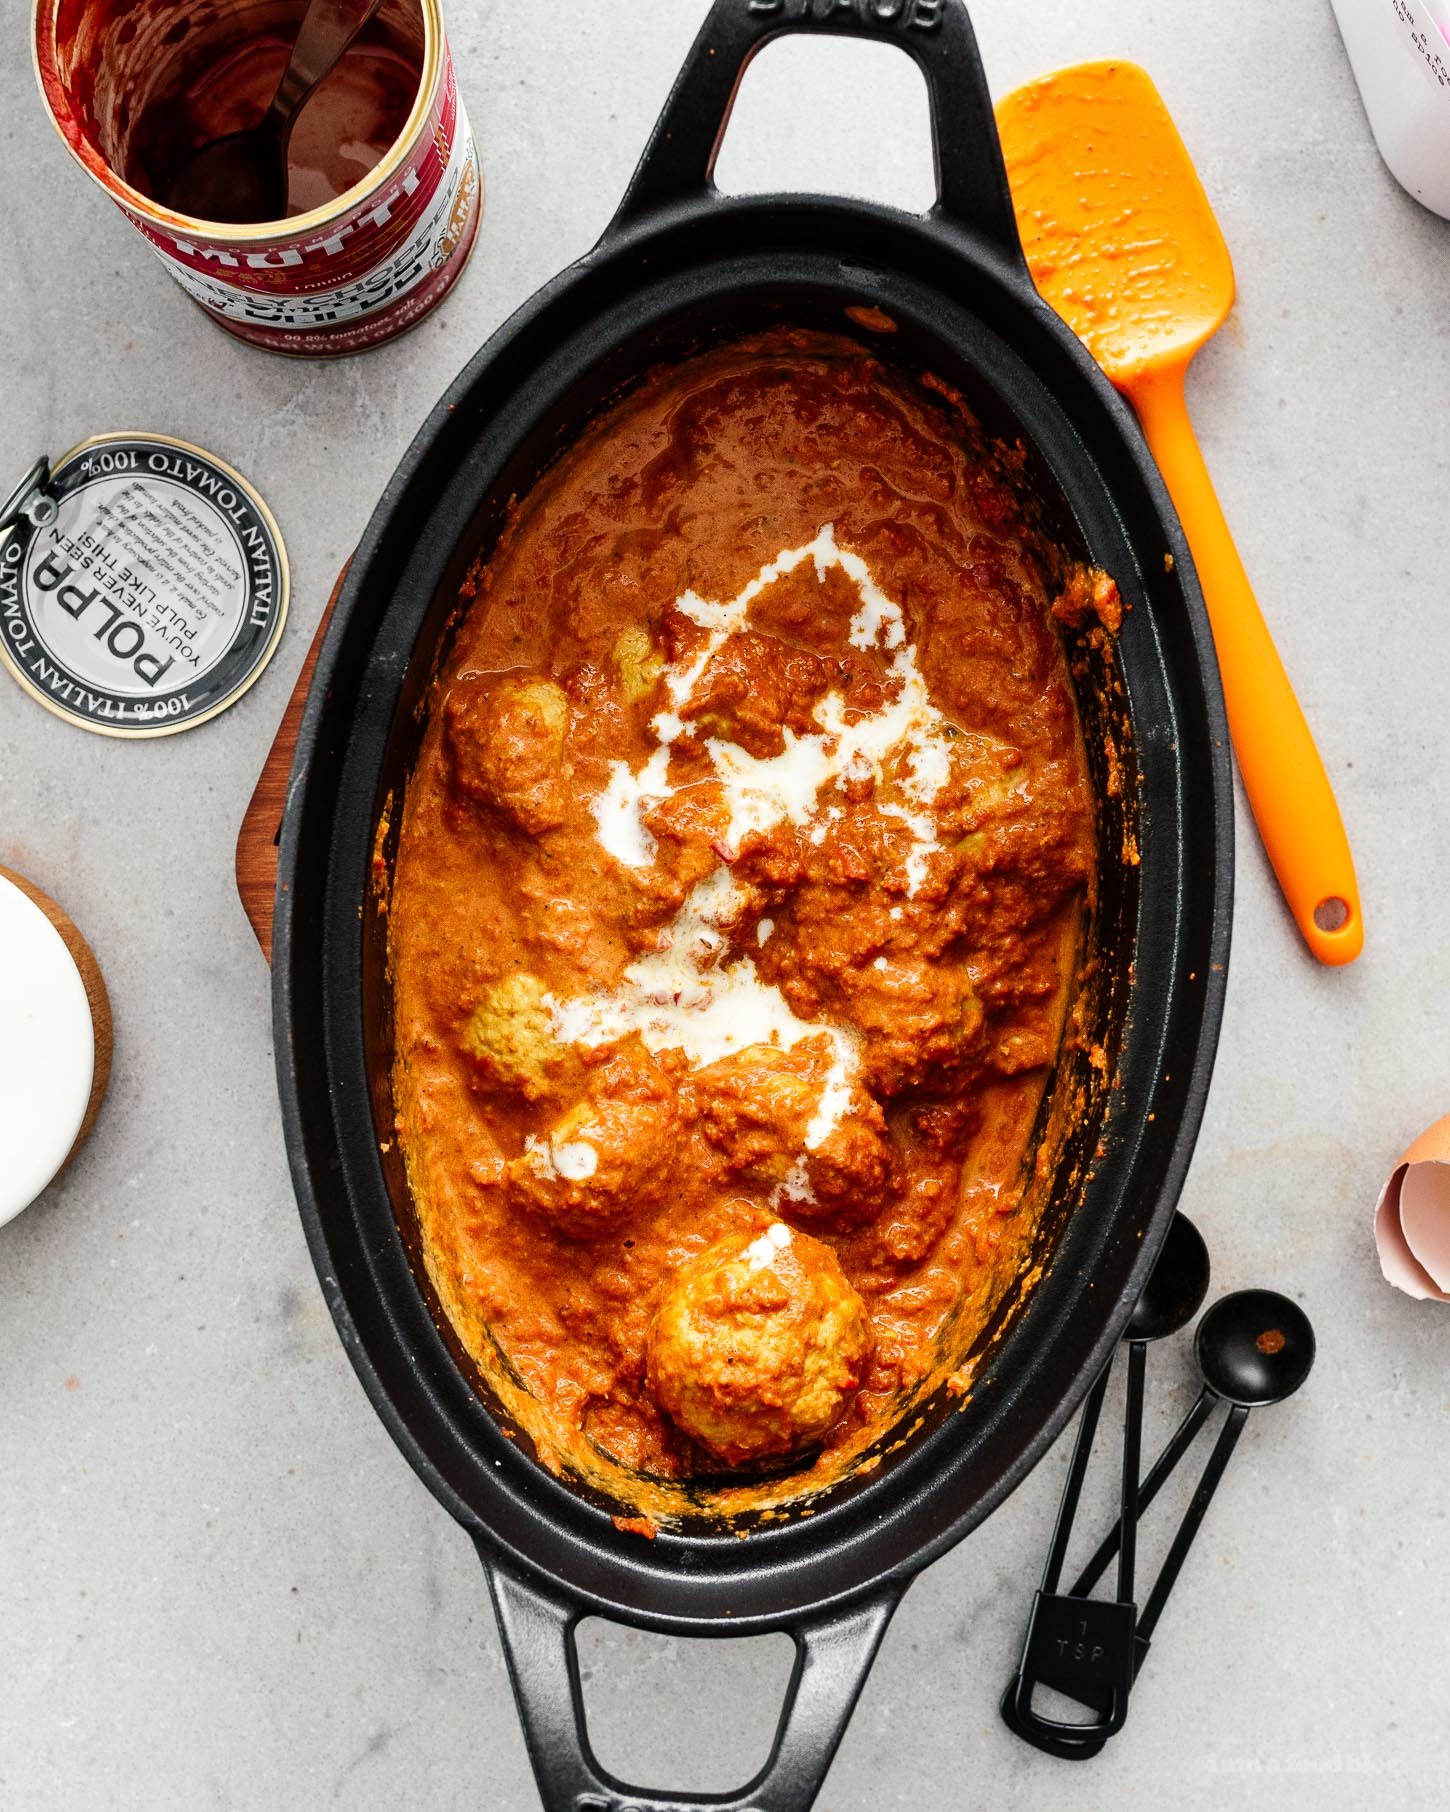 Creamy Comforting 30 Minute Butter Chicken Meatballs | www.iamafoodblog.com